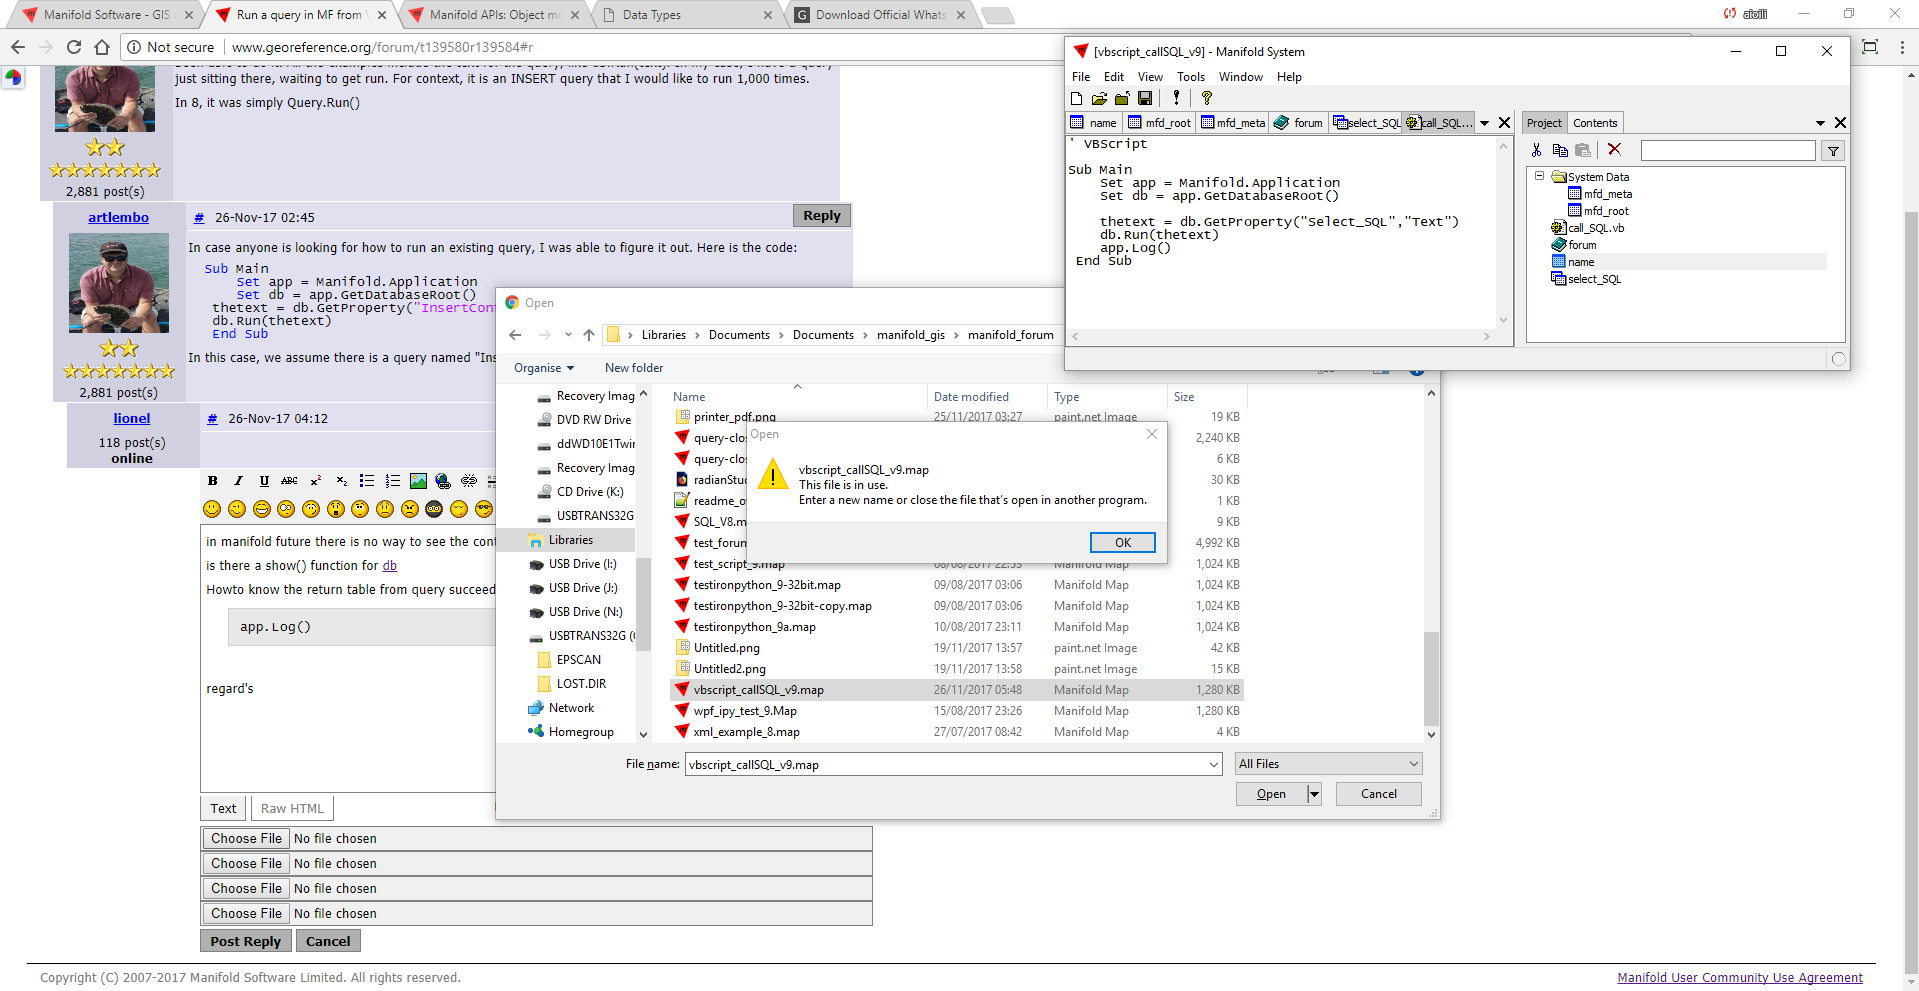 Run a query in MF from VBScript